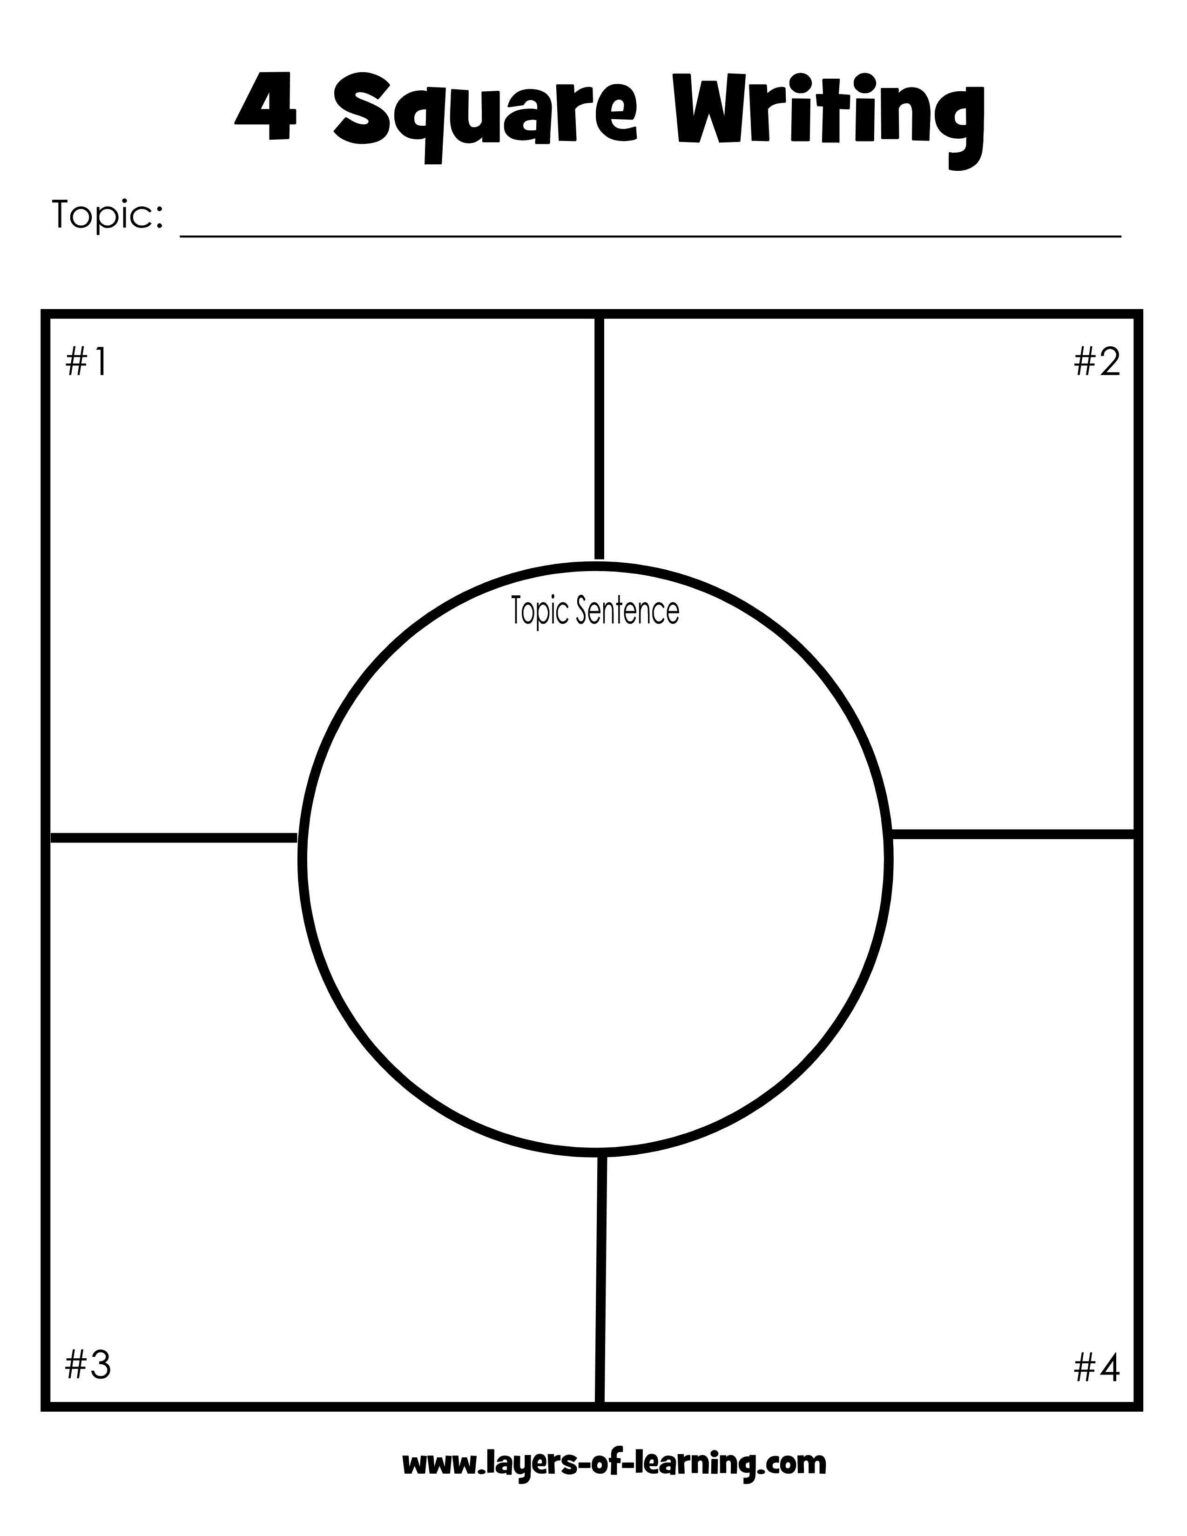 5 Best Photos Of Four Square Writing Template Printable For Blank Four Square Writing Template In 2020 Four Square Writing Writing Interventions Writing Templates